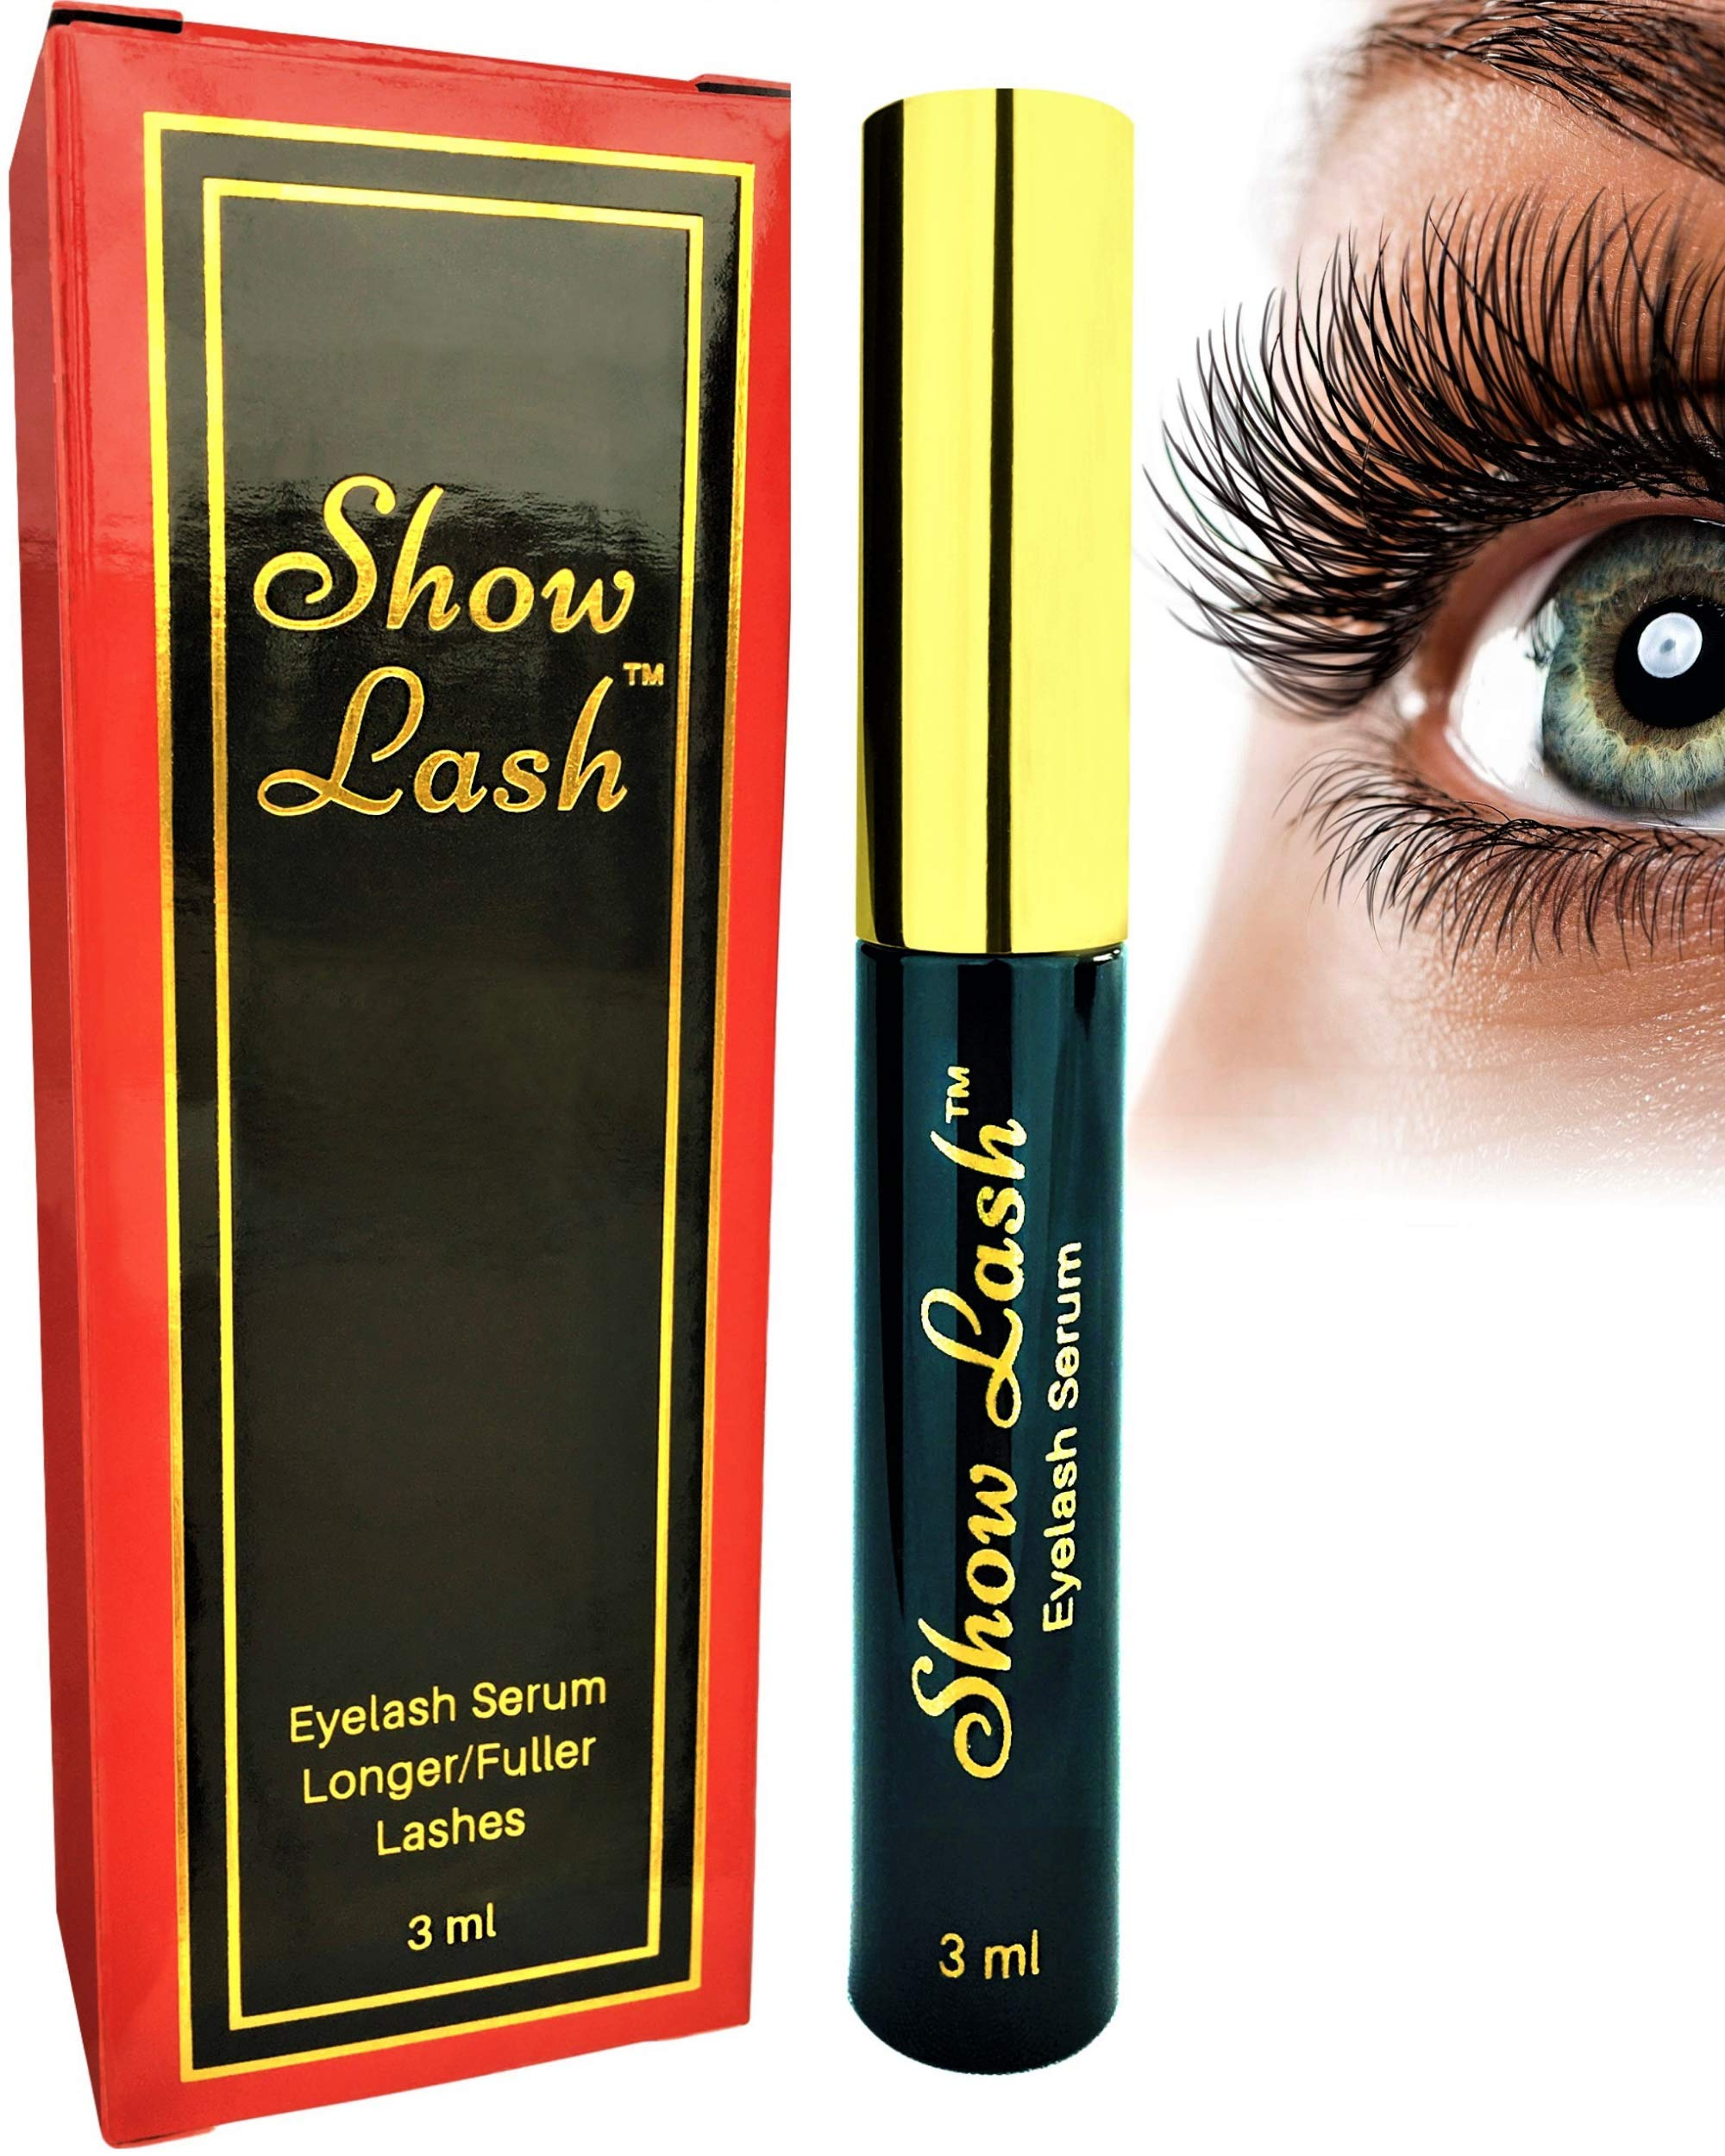 Show Lash - Premium Eyelash and Eyebrow Growth Enhancing Serum for Longer, Thicker, Gorgeous Lashes. The Most Powerful Lash Boosting Serum Without a Prescription. Clinically Proven.